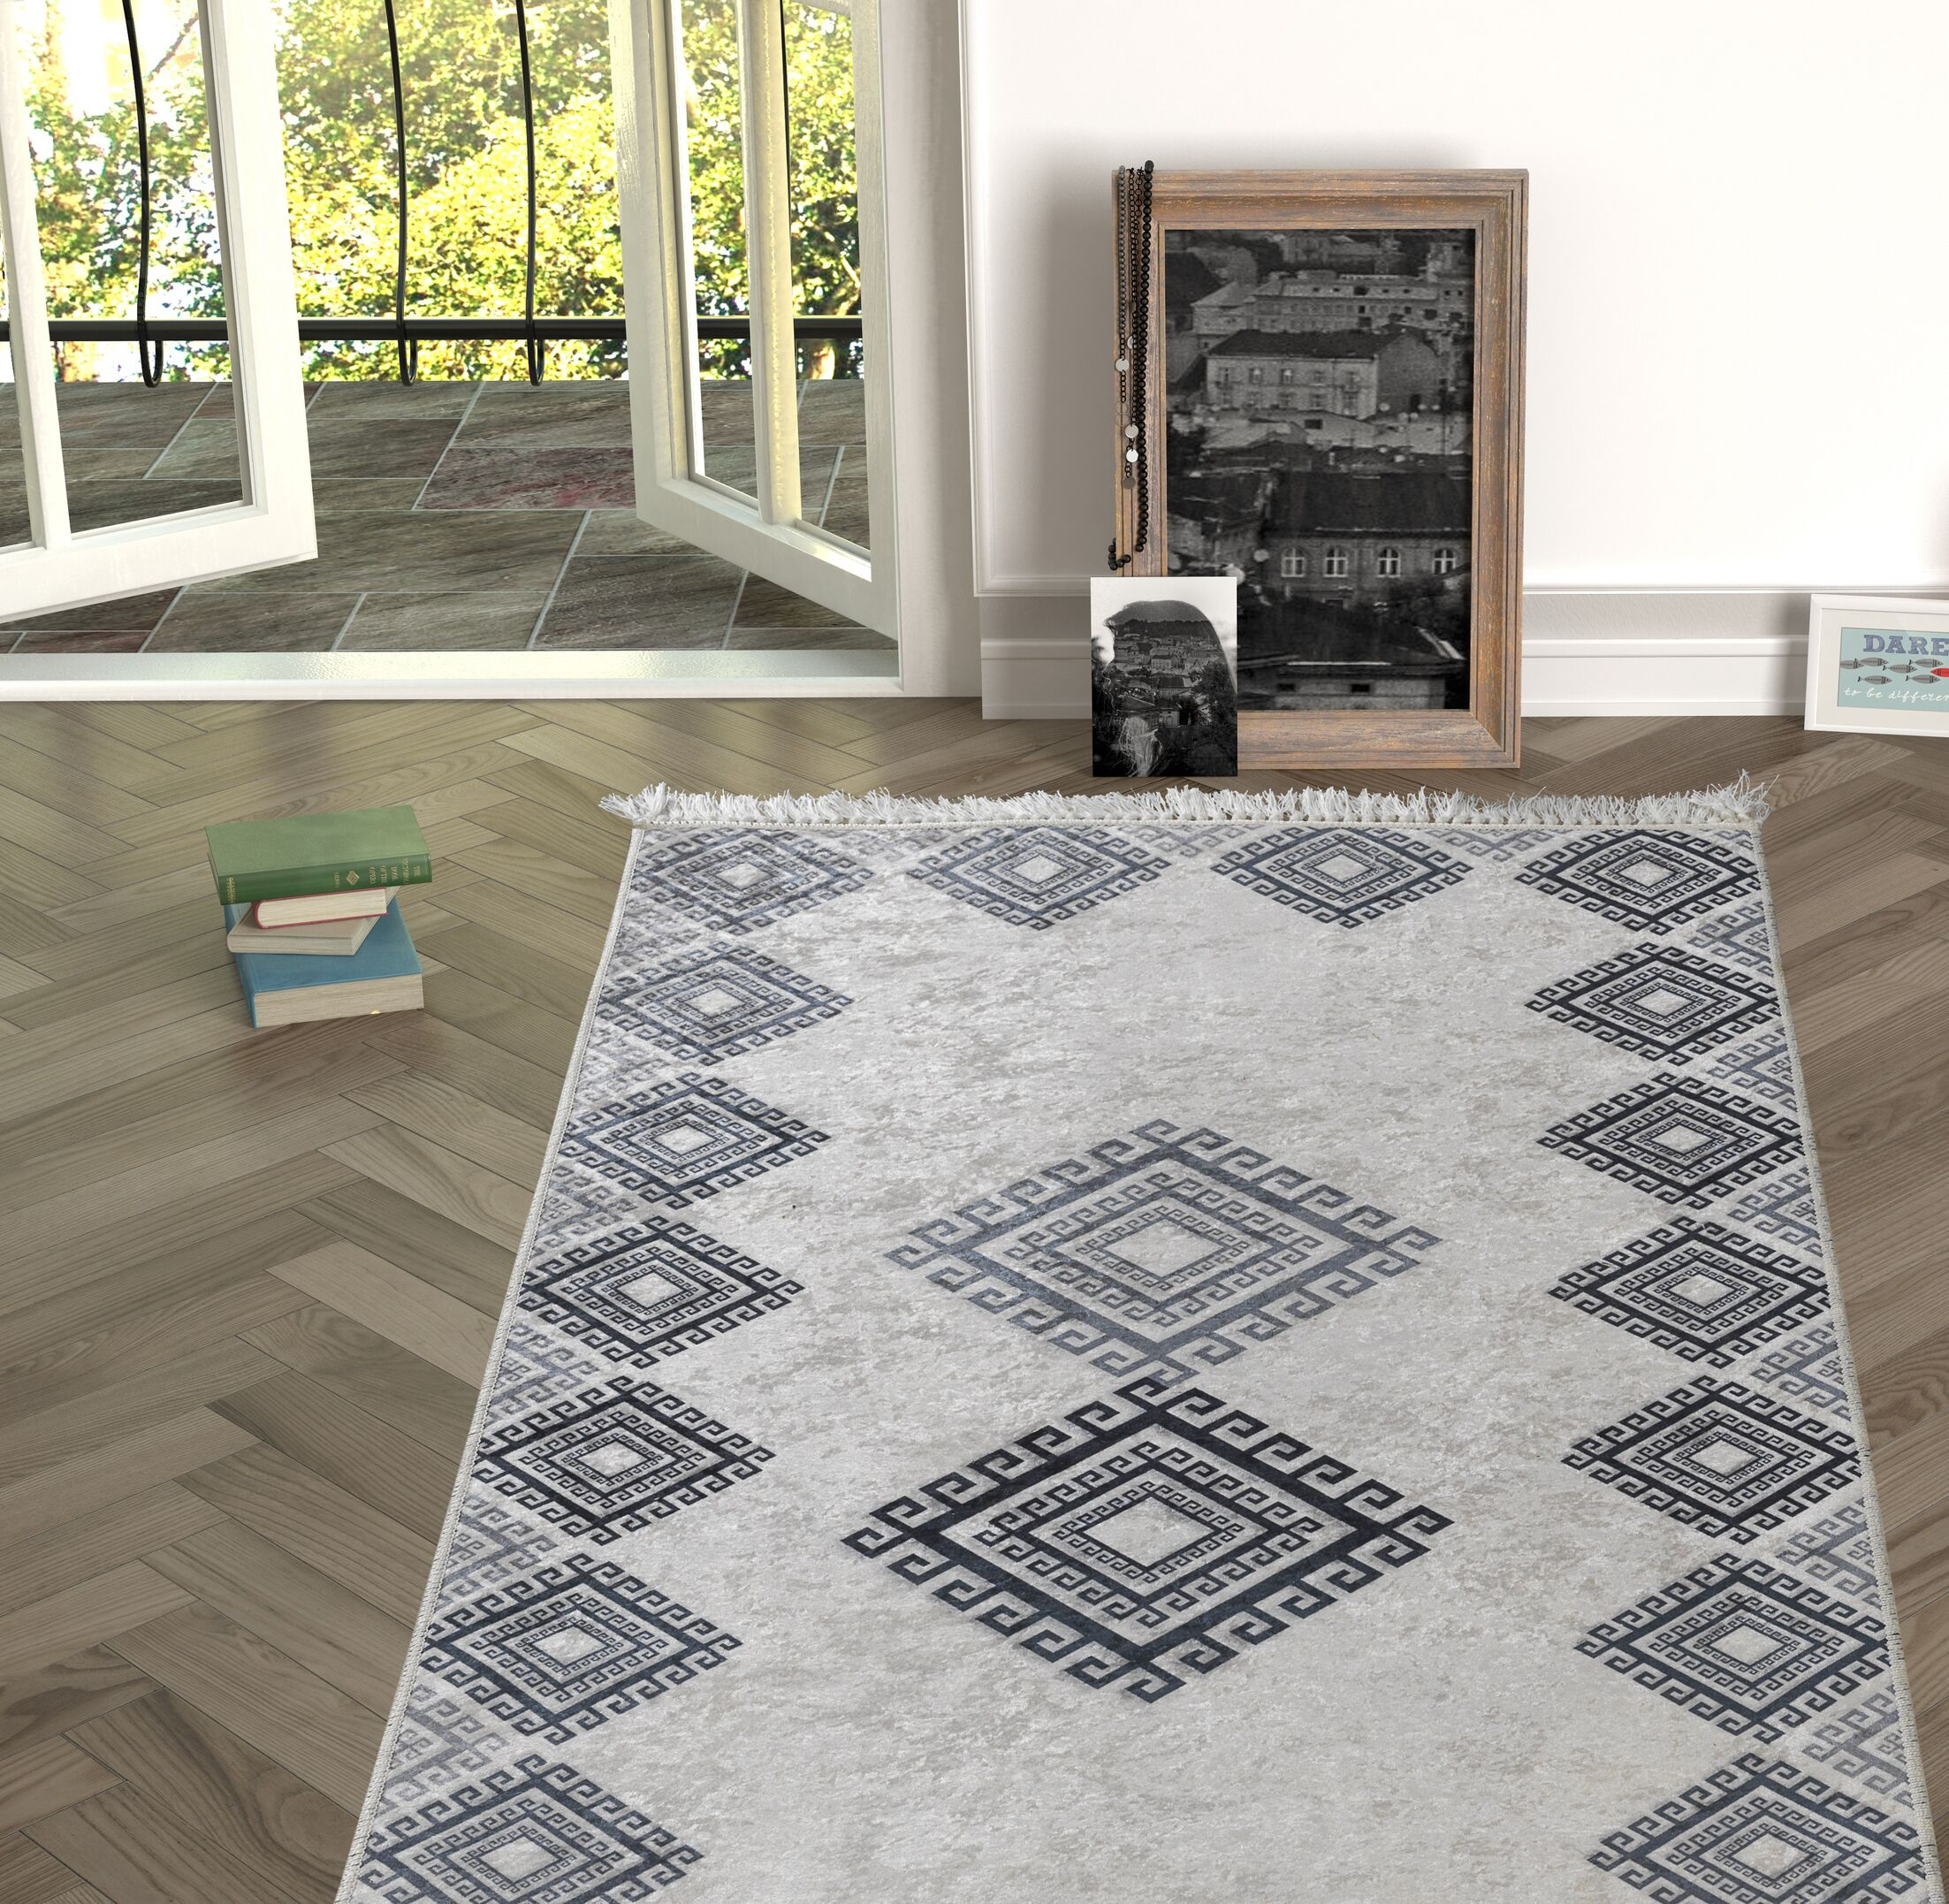 Longworth Black/Gray Indoor/Outdoor Area Rug Size: Rectangle 5'3